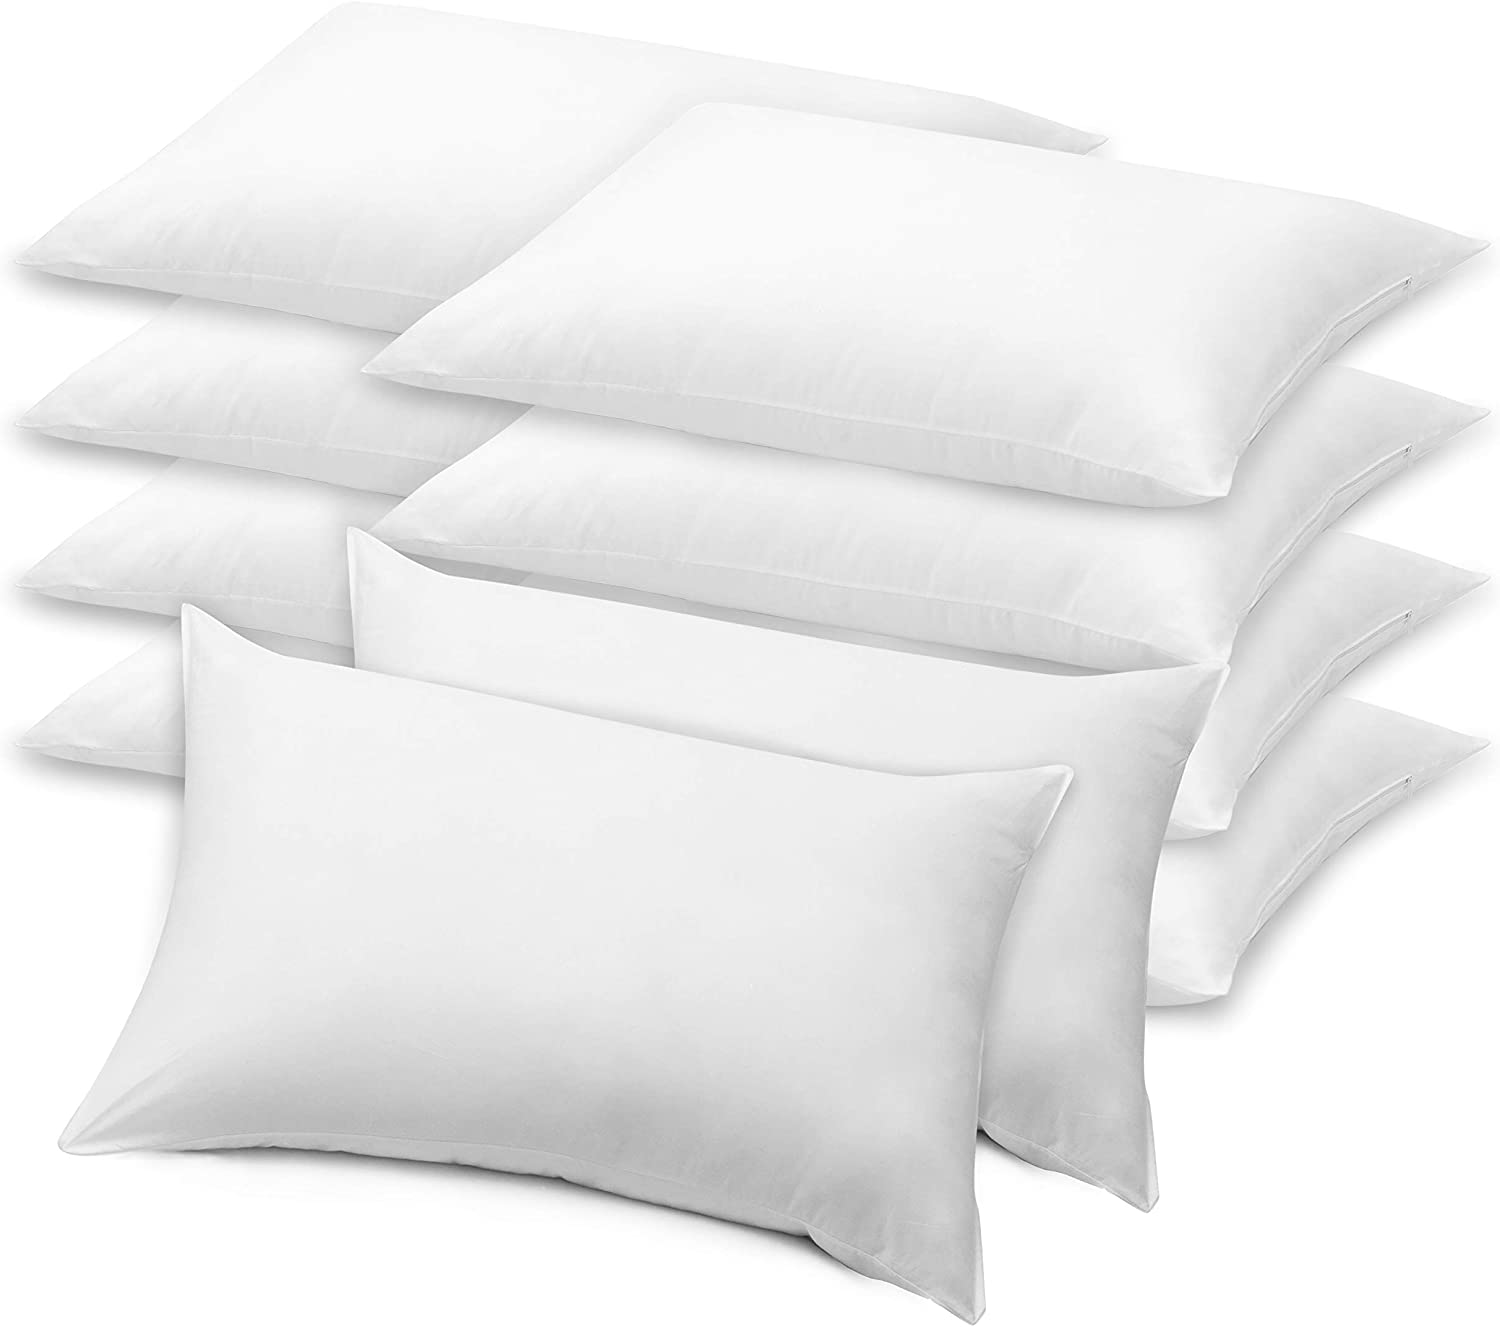 LB LAURA BENASSE LIVE THE DESIGN Elite Bed Pillows Queen Size Set of 10, Hotel Pillows for Sleeping 10 Pack, Hypoallergenic Down Alternative Microfiber Soft Plush Washable Pillow Inserts